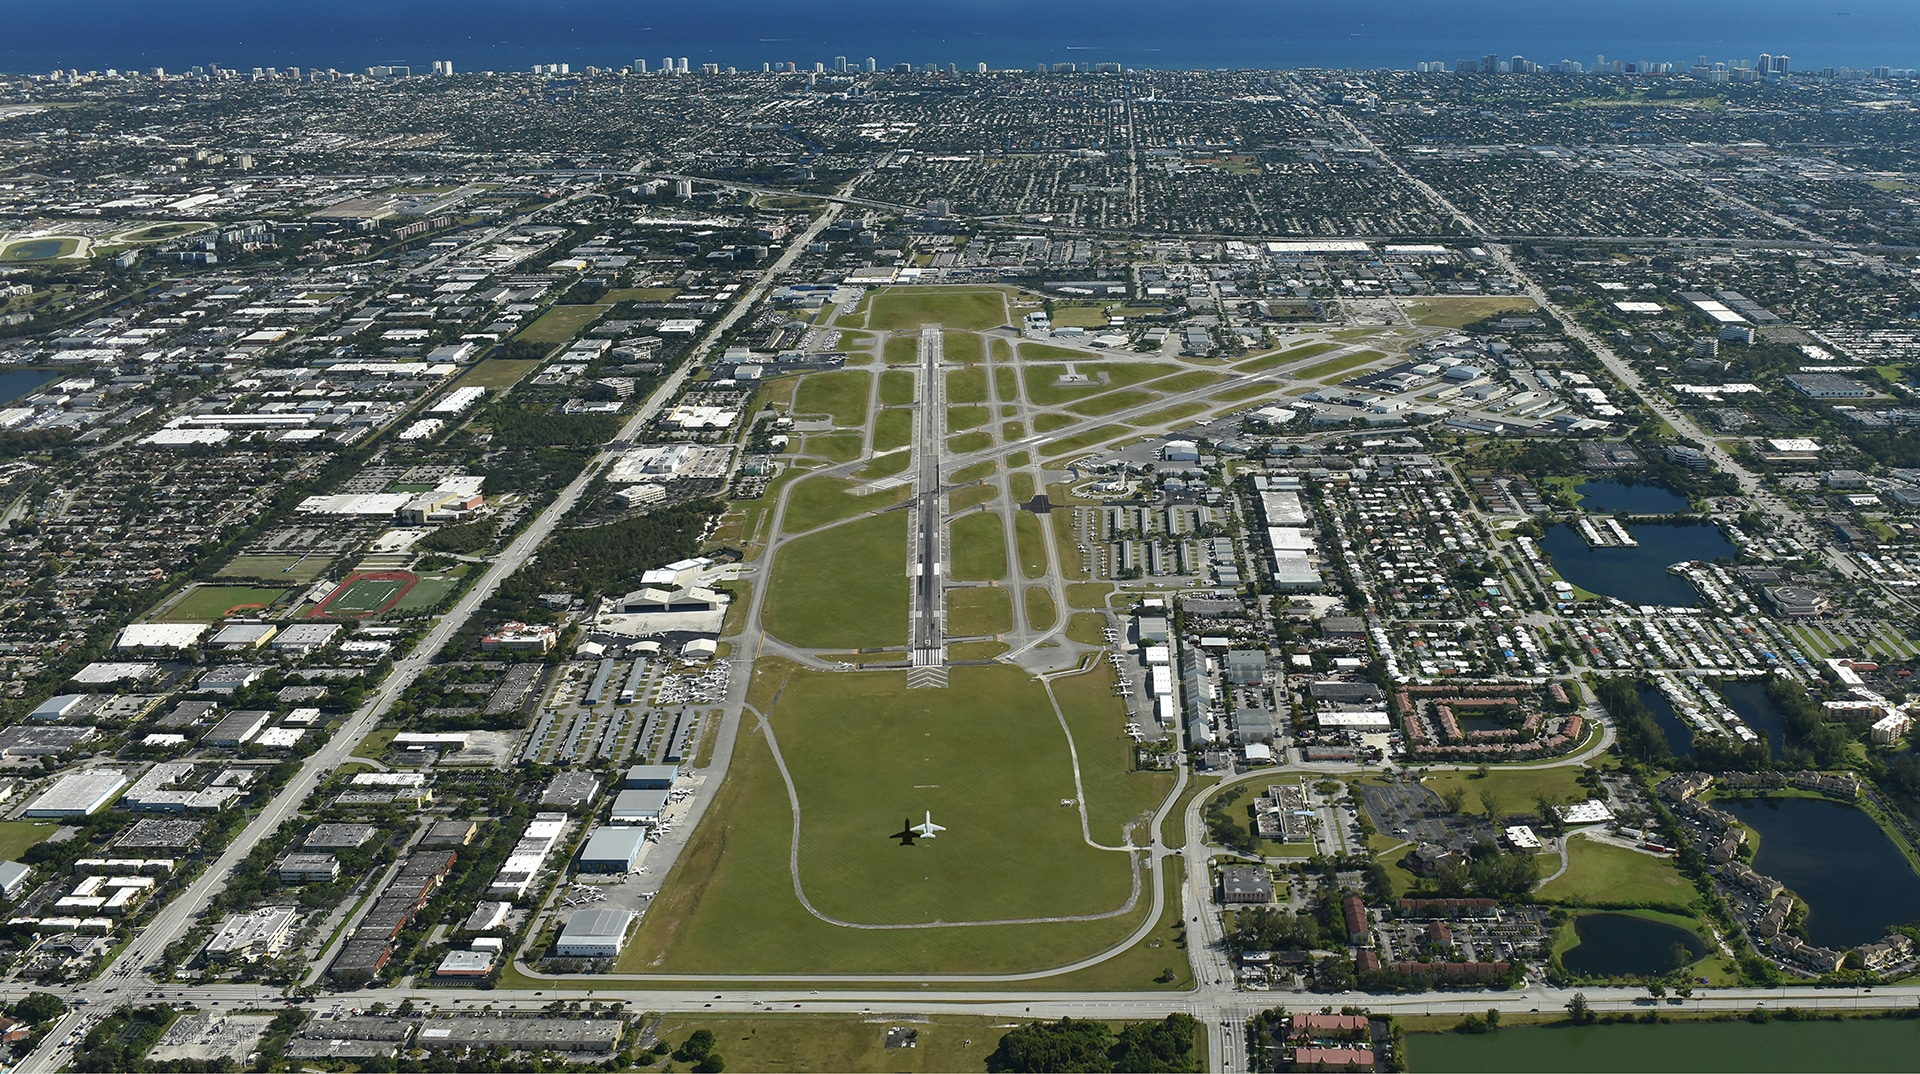 Fort Lauderdale Executive Airport